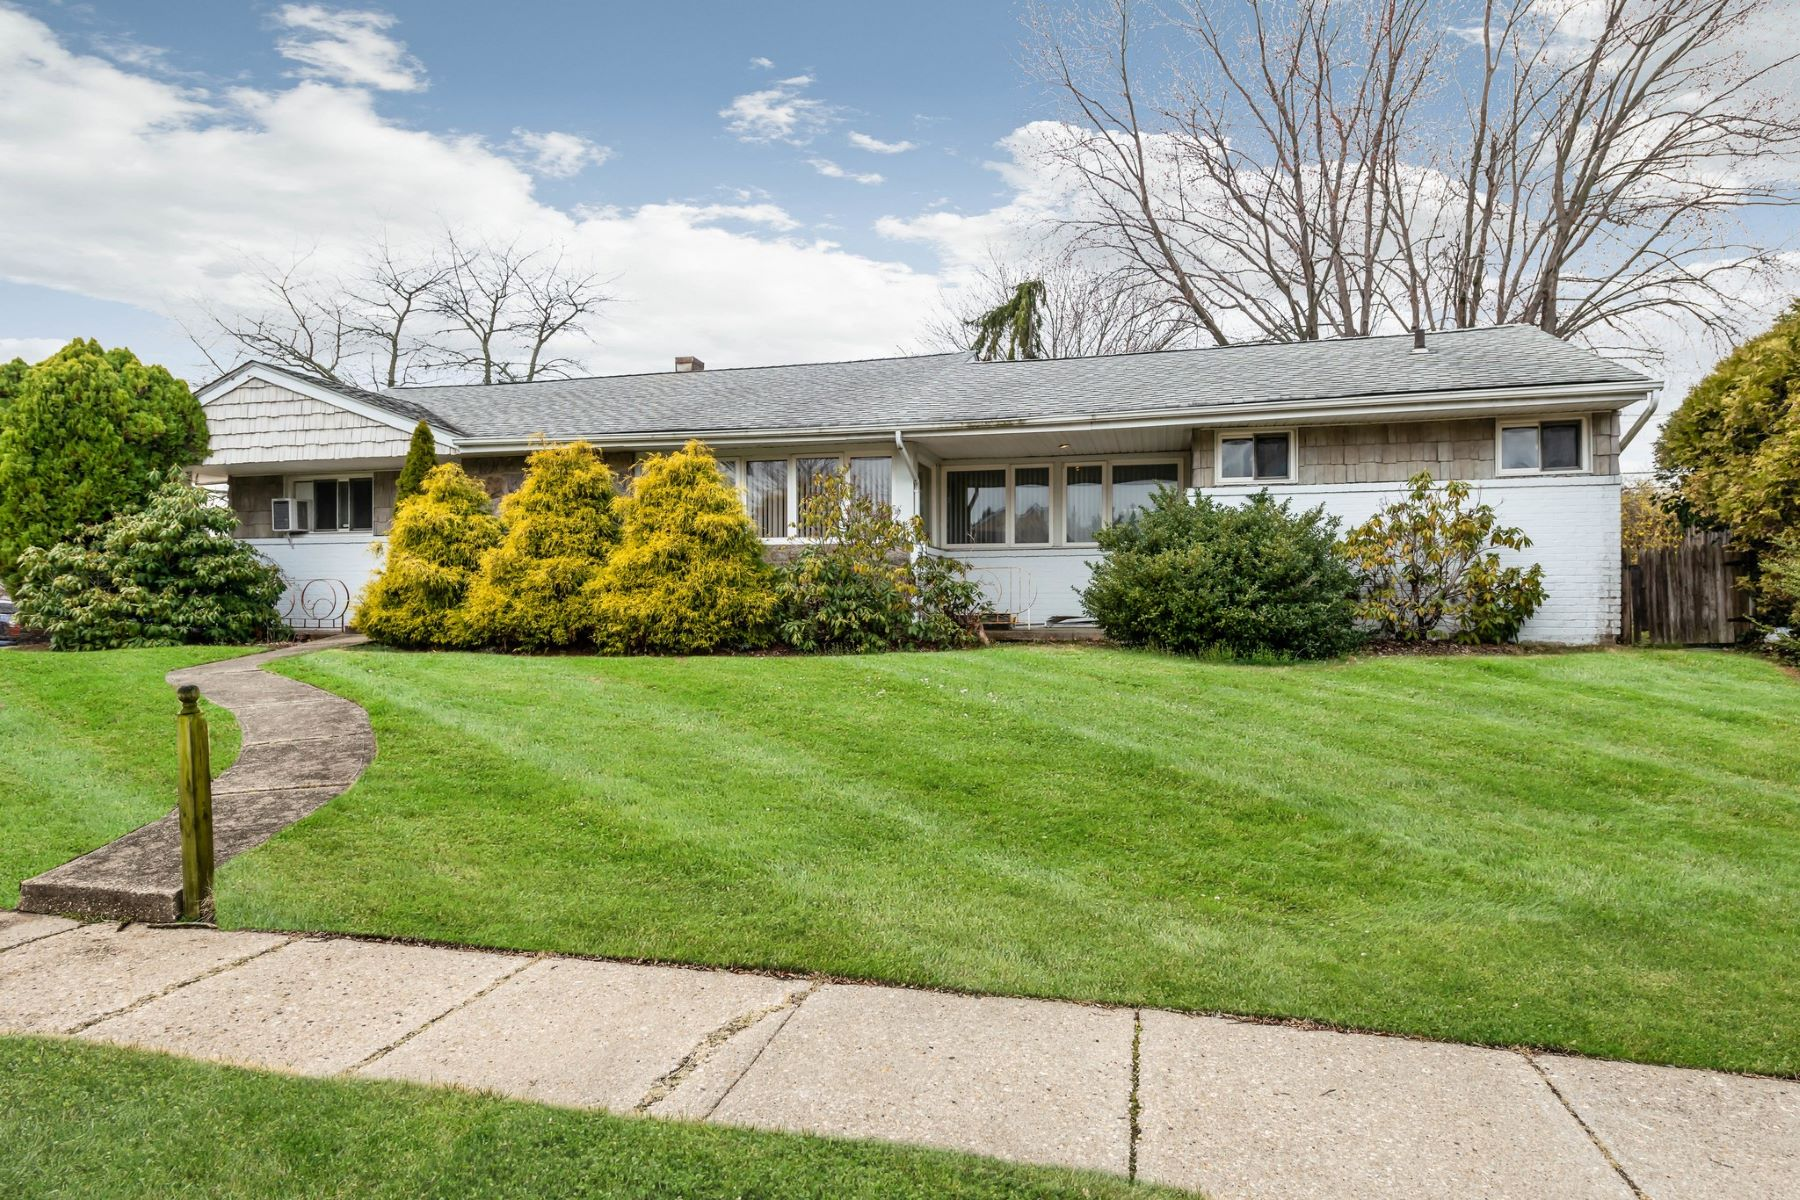 Single Family Homes for Active at Bethpage 32 Phyllis Drive Bethpage, New York 11714 United States